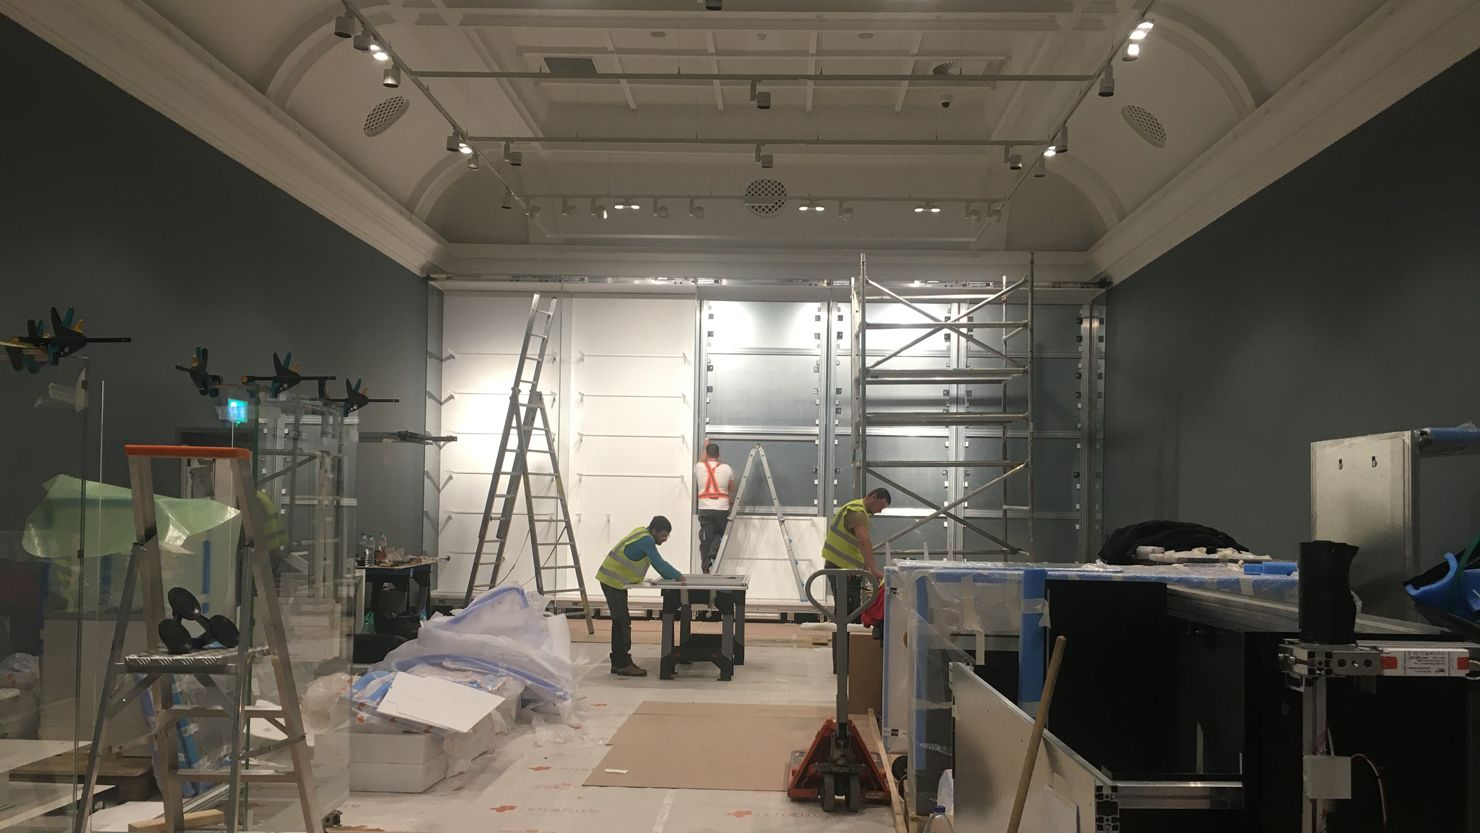 Workmen prepping a gallery for building work